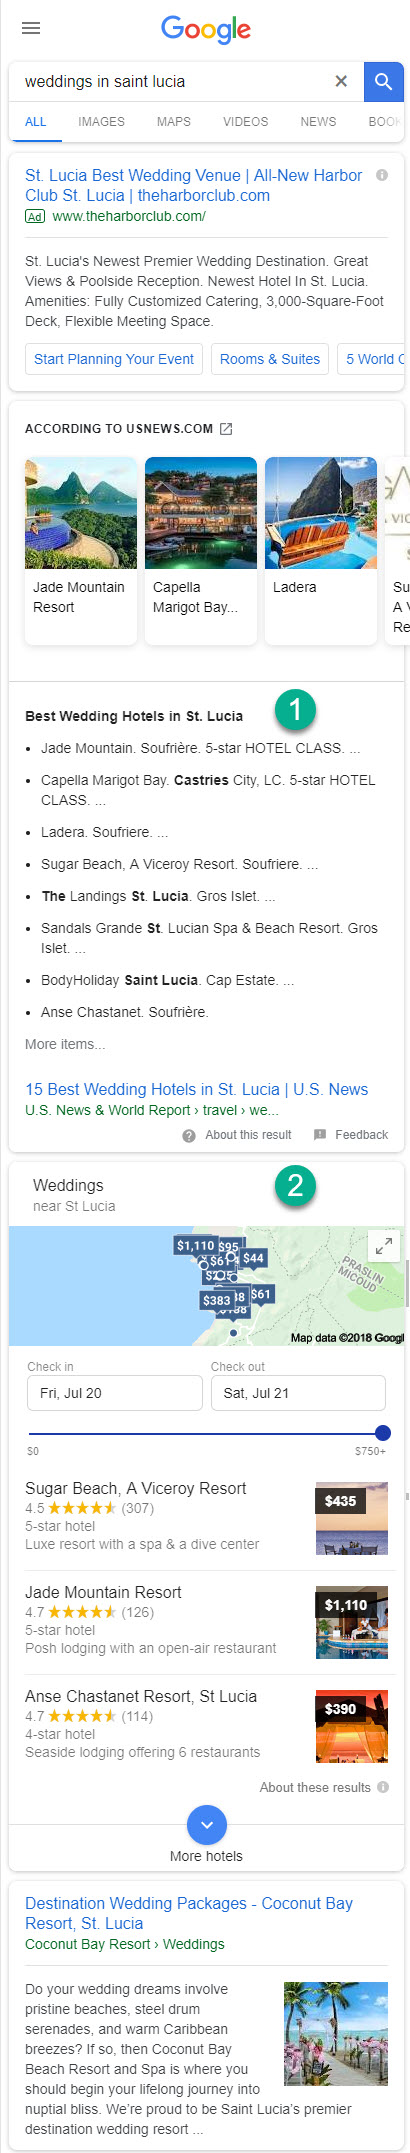 Wedding Resorts Saint Lucia